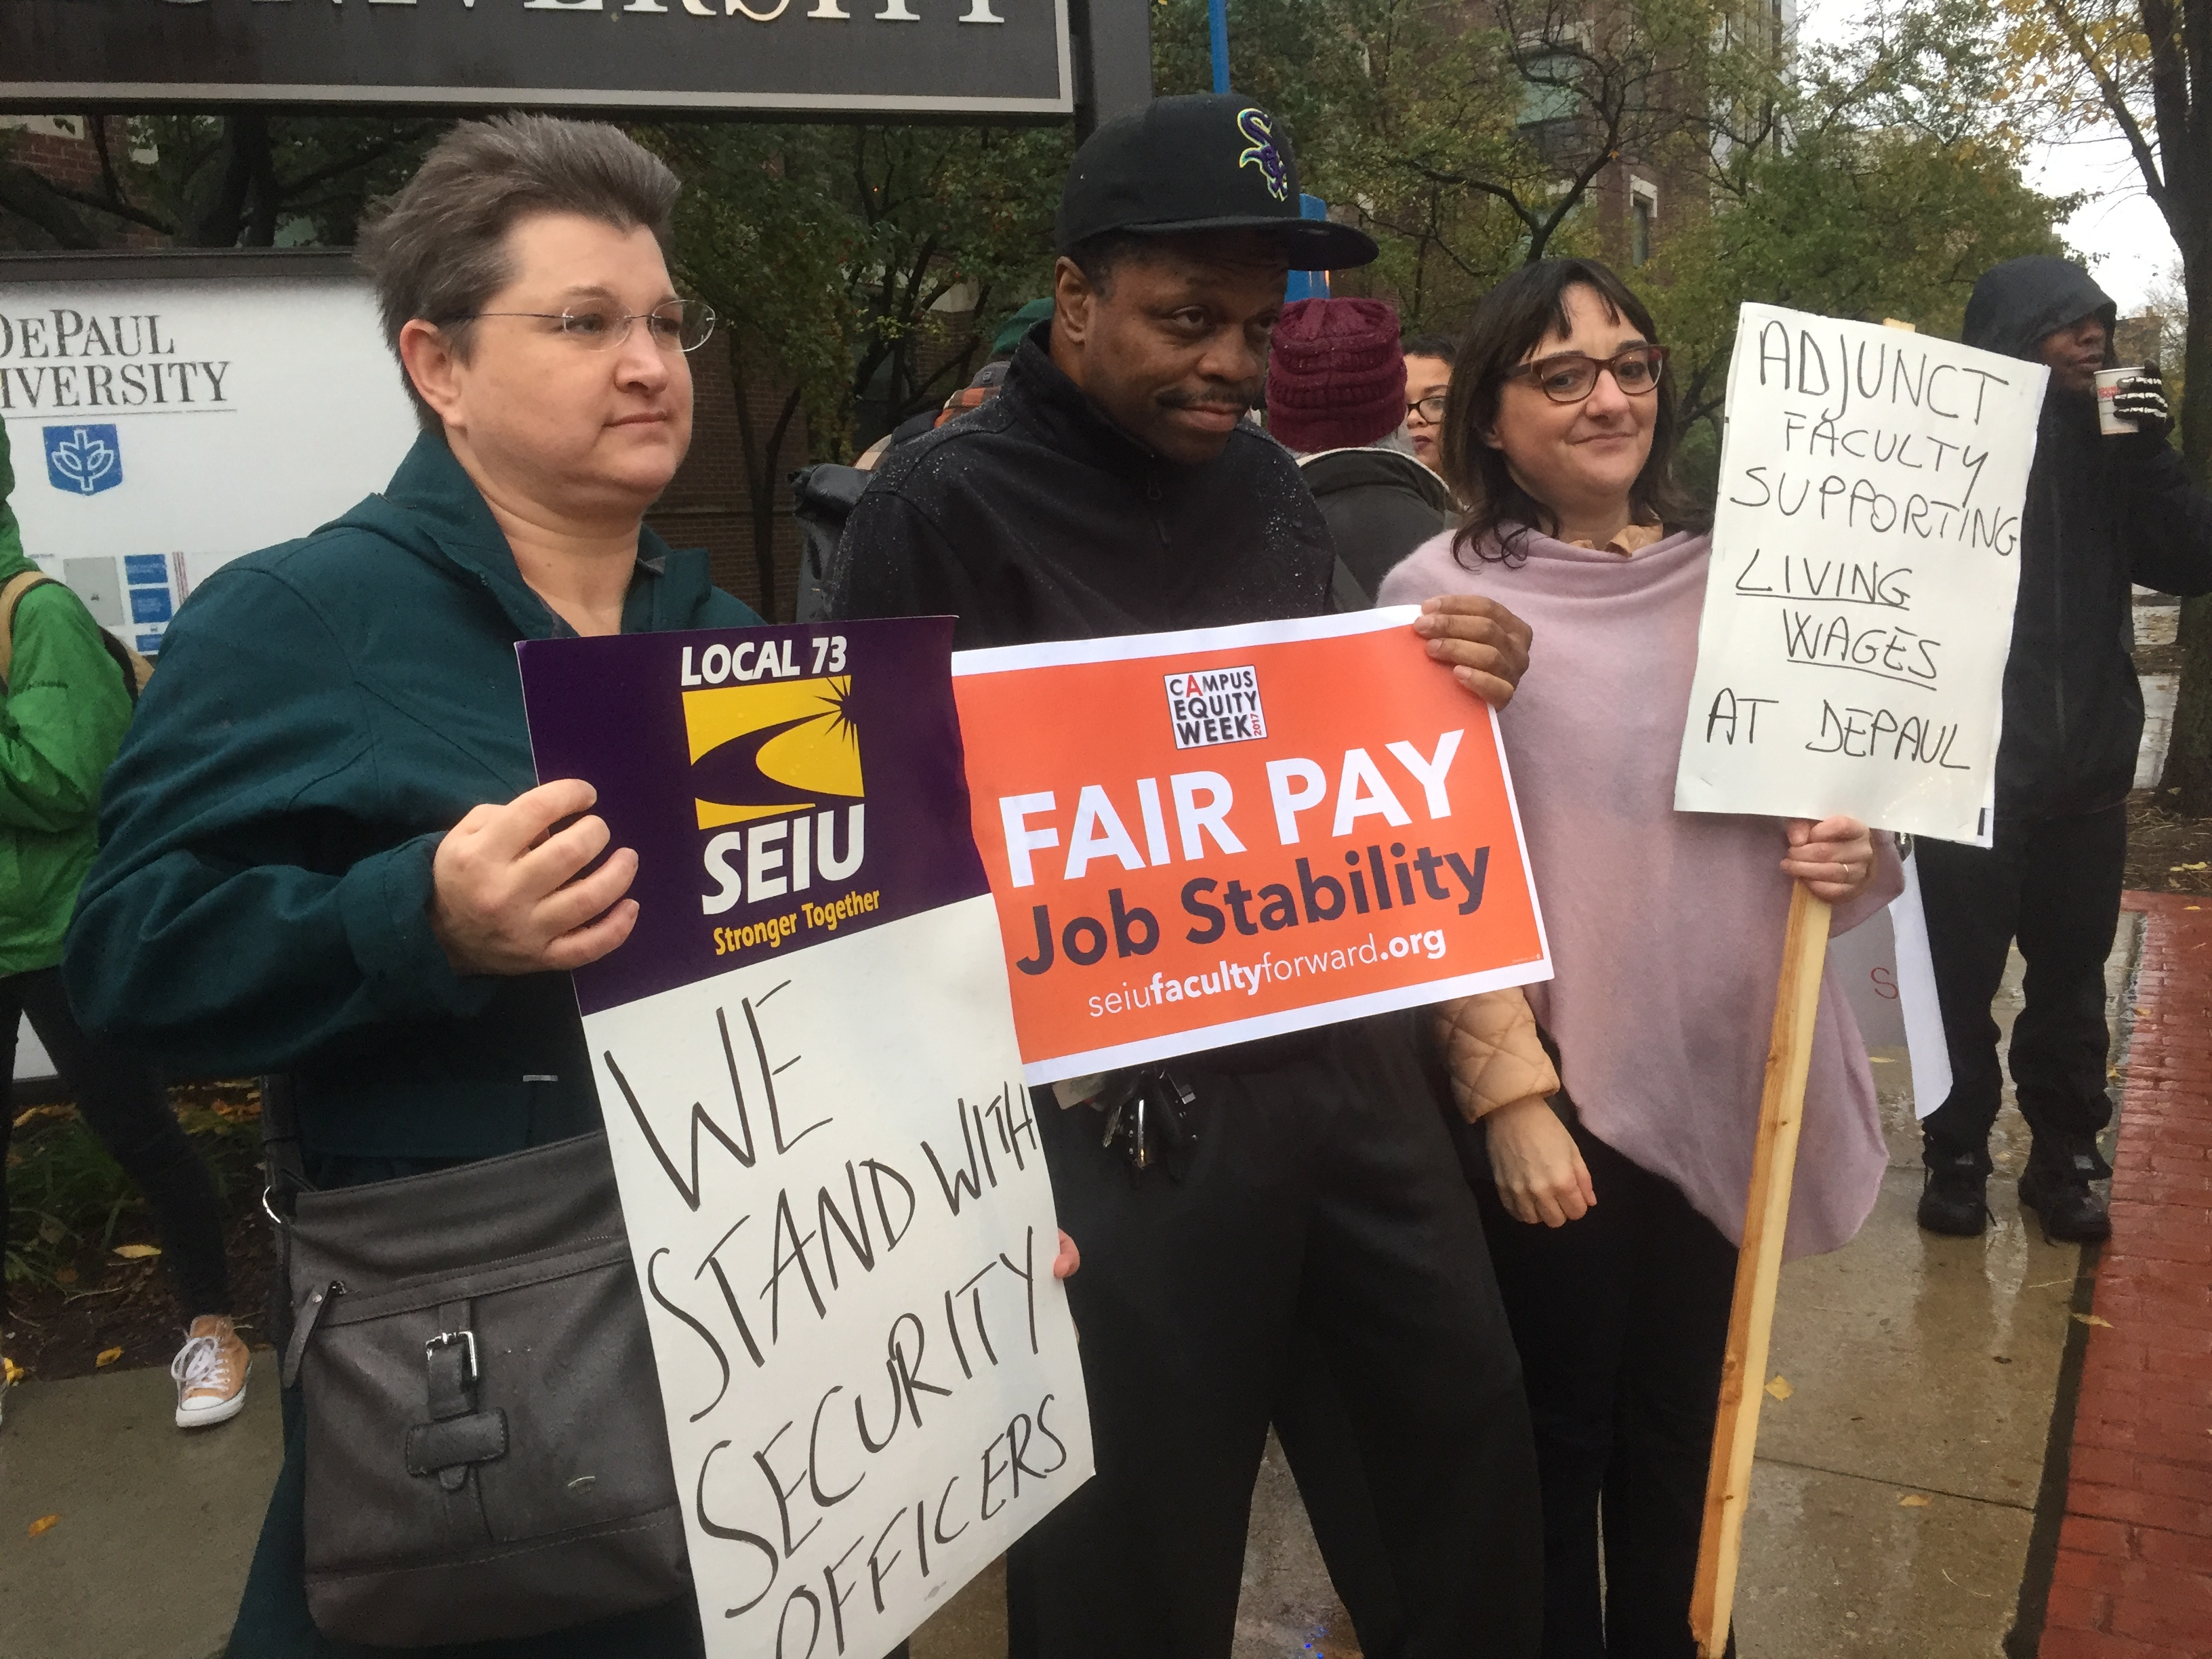 Modern language adjunct professors at DePaul attend the Oct. 24 protest to support the overnight desk receptionists. Photo: Marissa Nelson, 14 East.